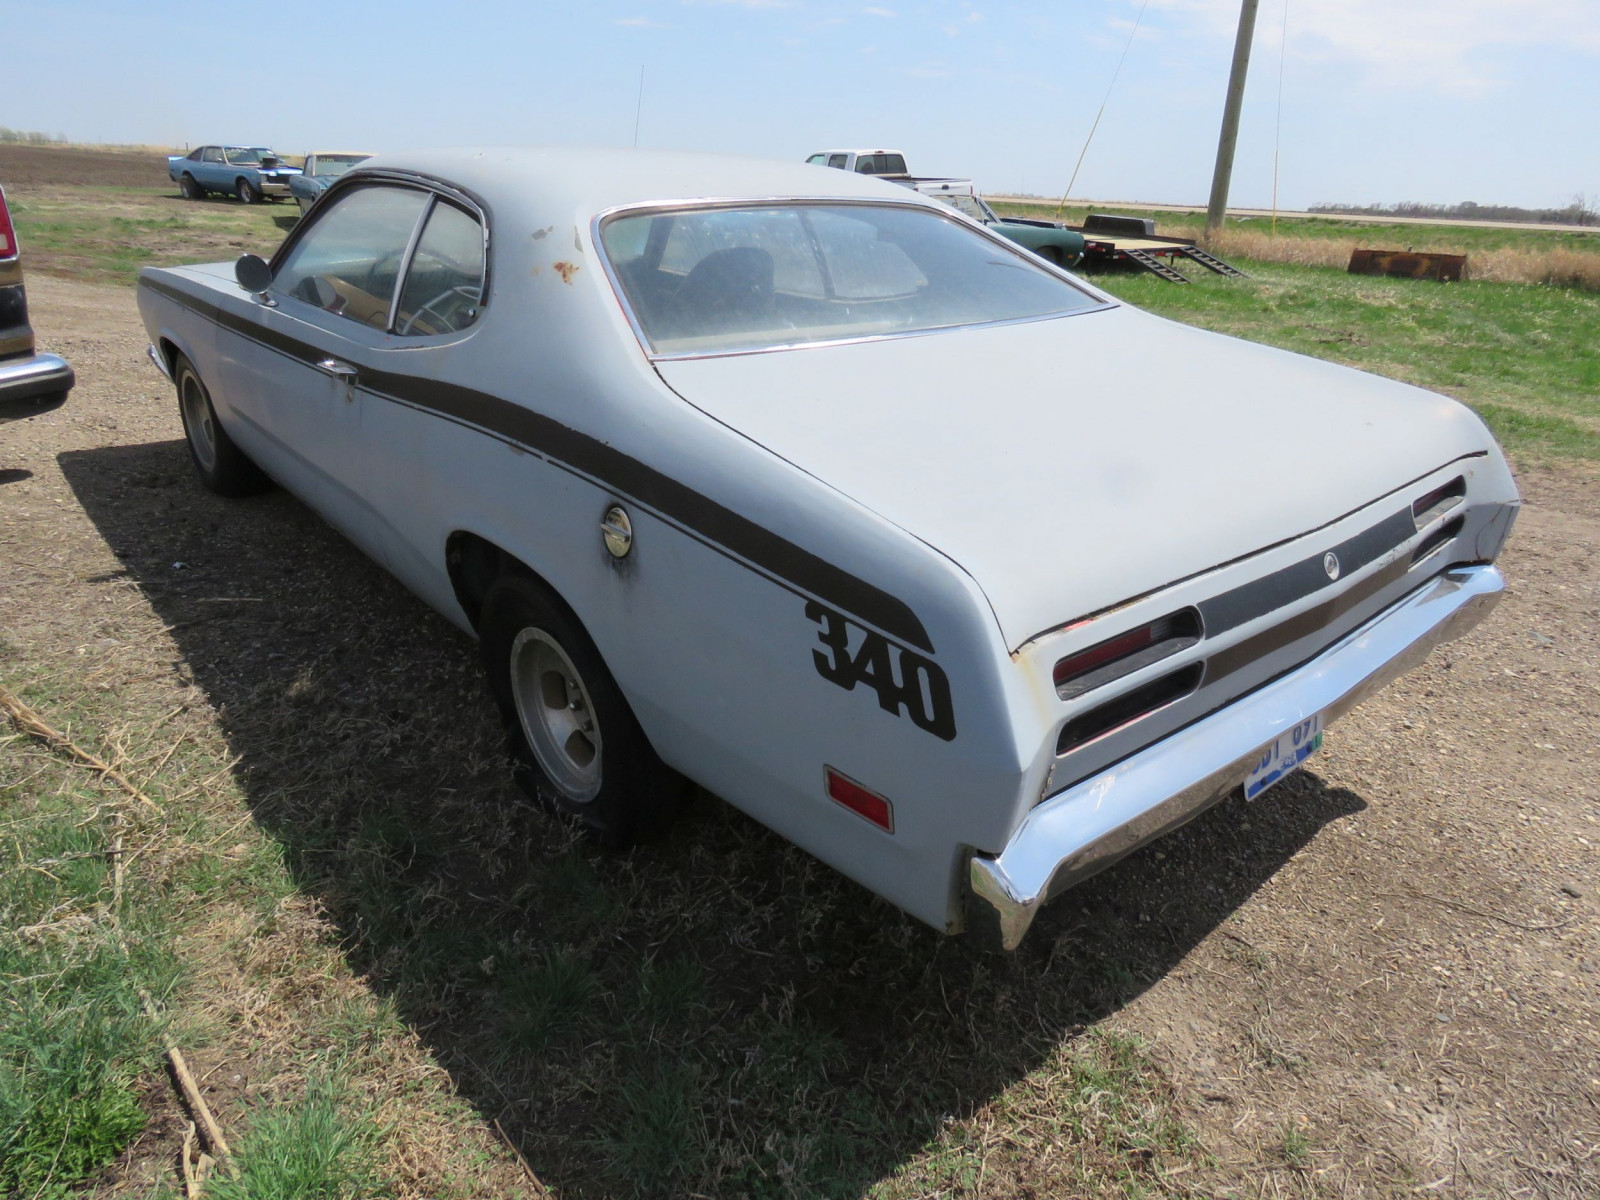 1971 Plymouth Duster 2dr HT - Image 6